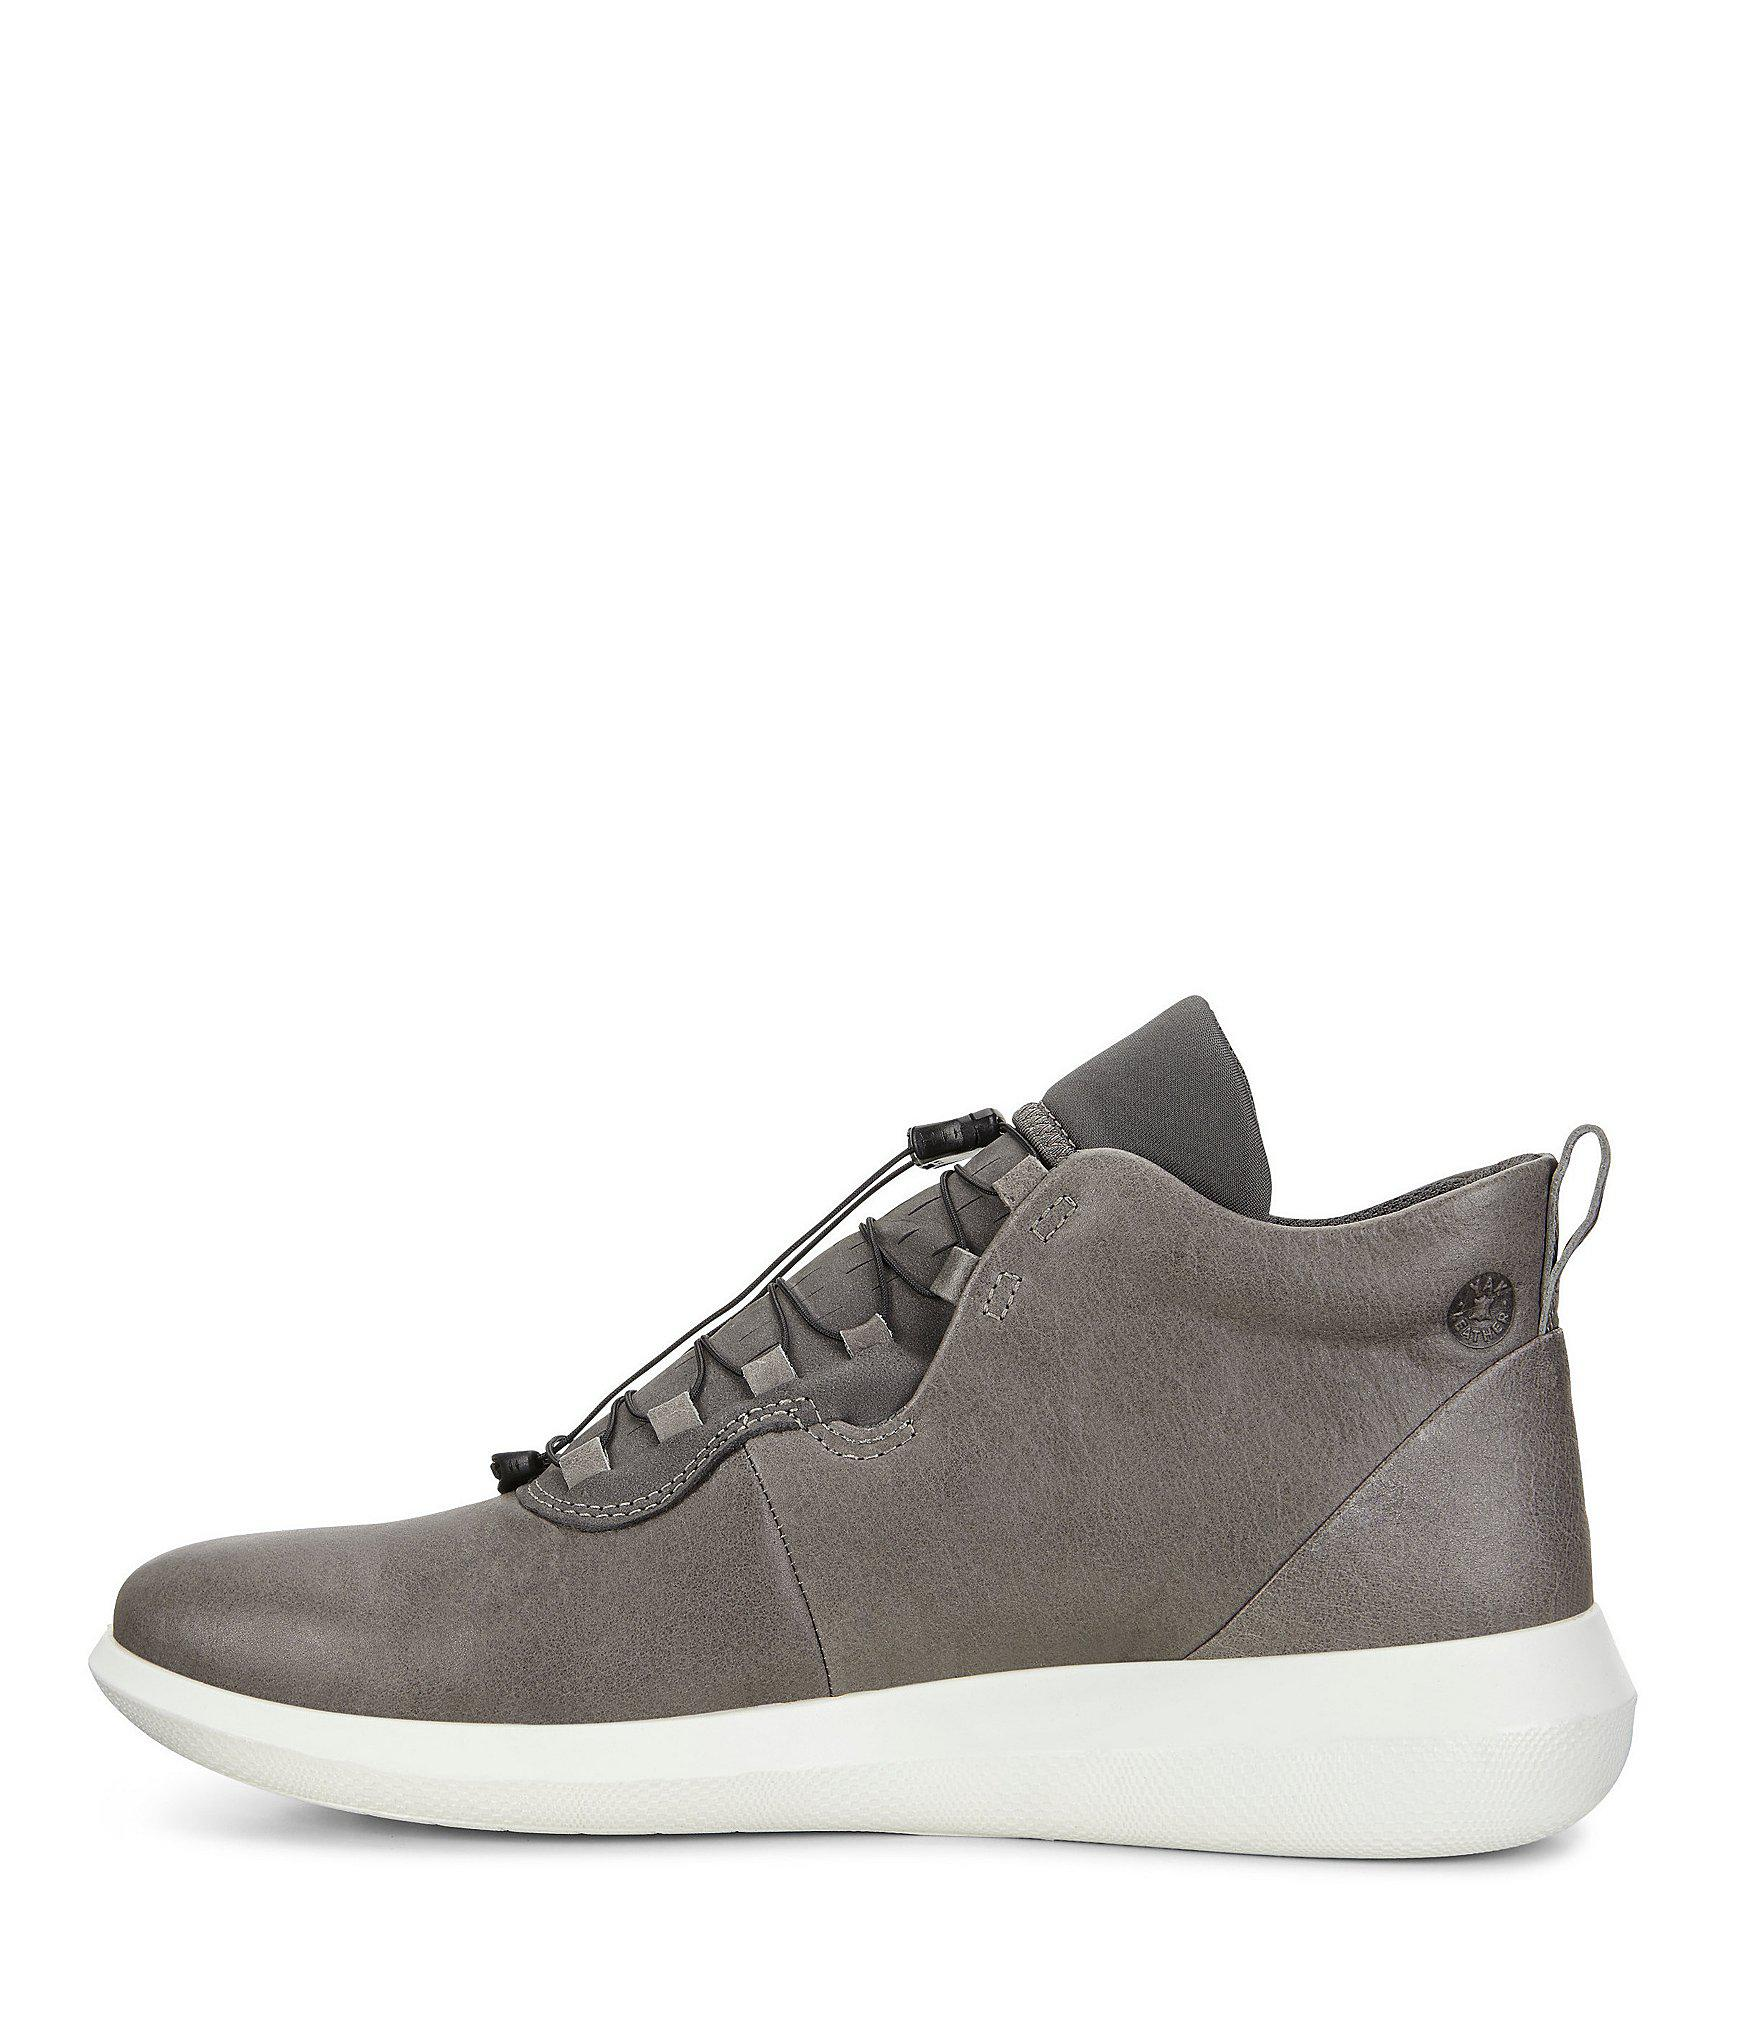 63aeee6210a1 Lyst - Ecco Men s Scinapse High Top Sneakers in Gray for Men